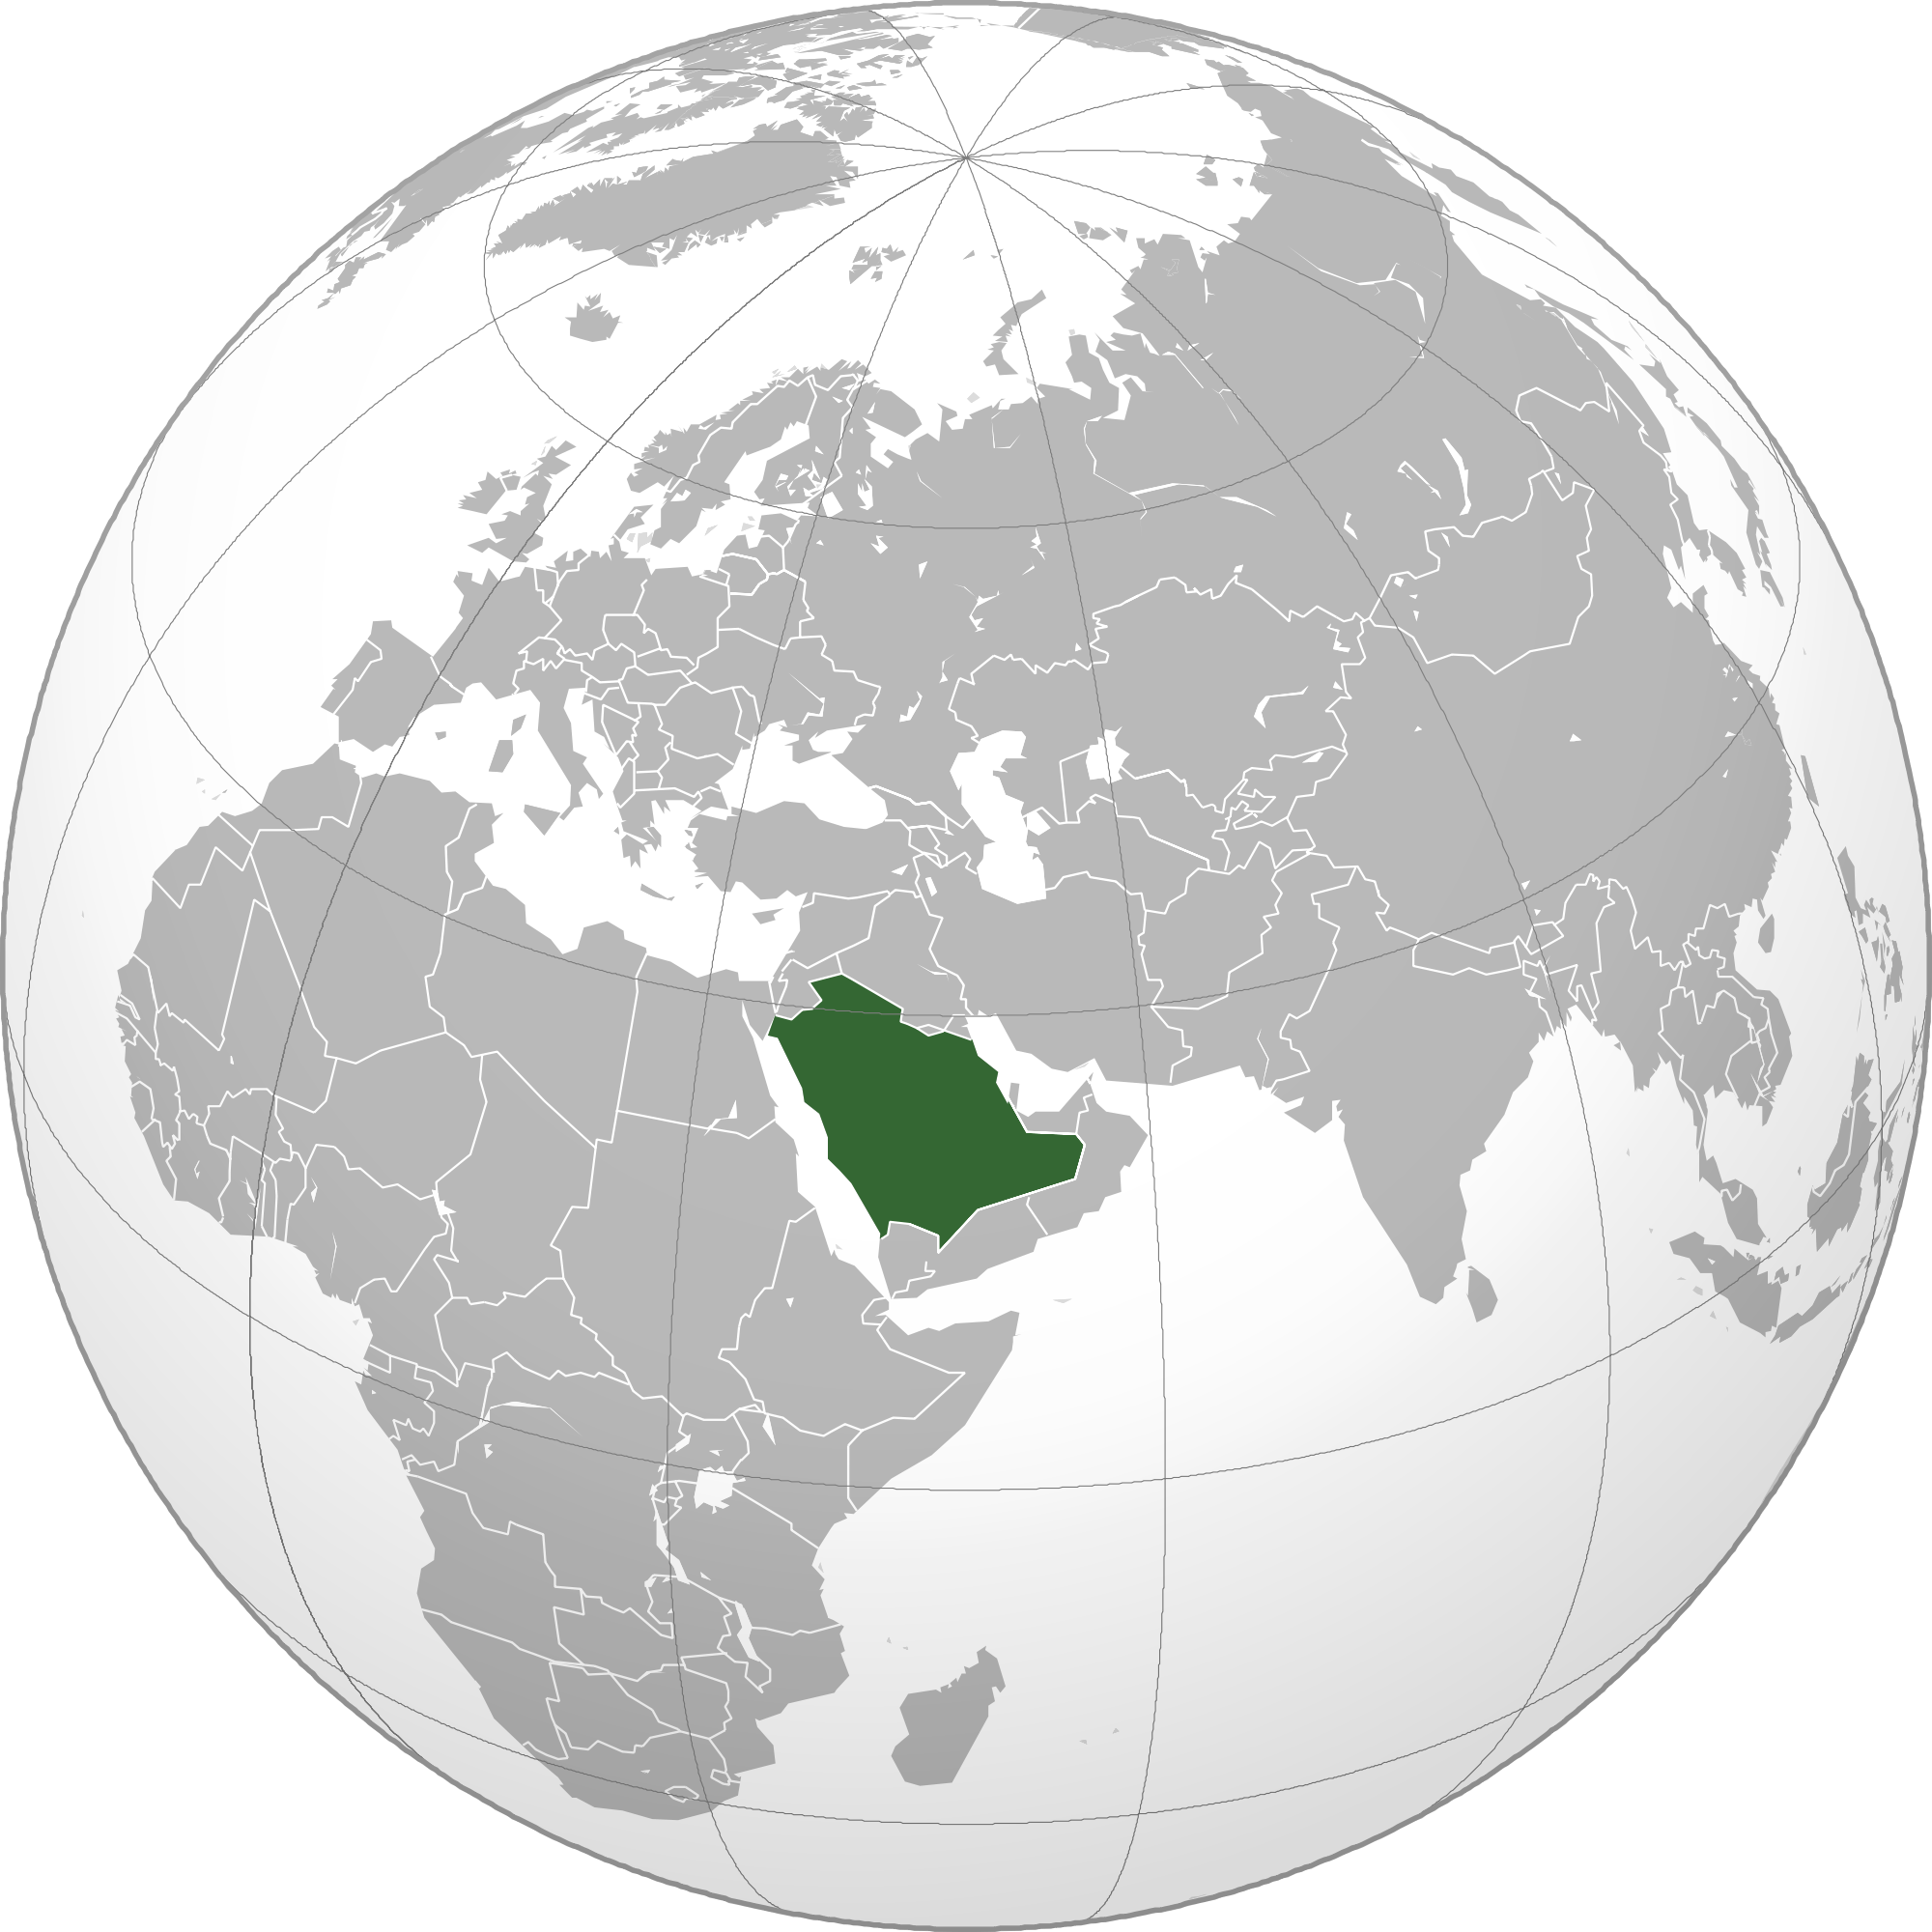 Location of the Saudi Arabia in the World Map